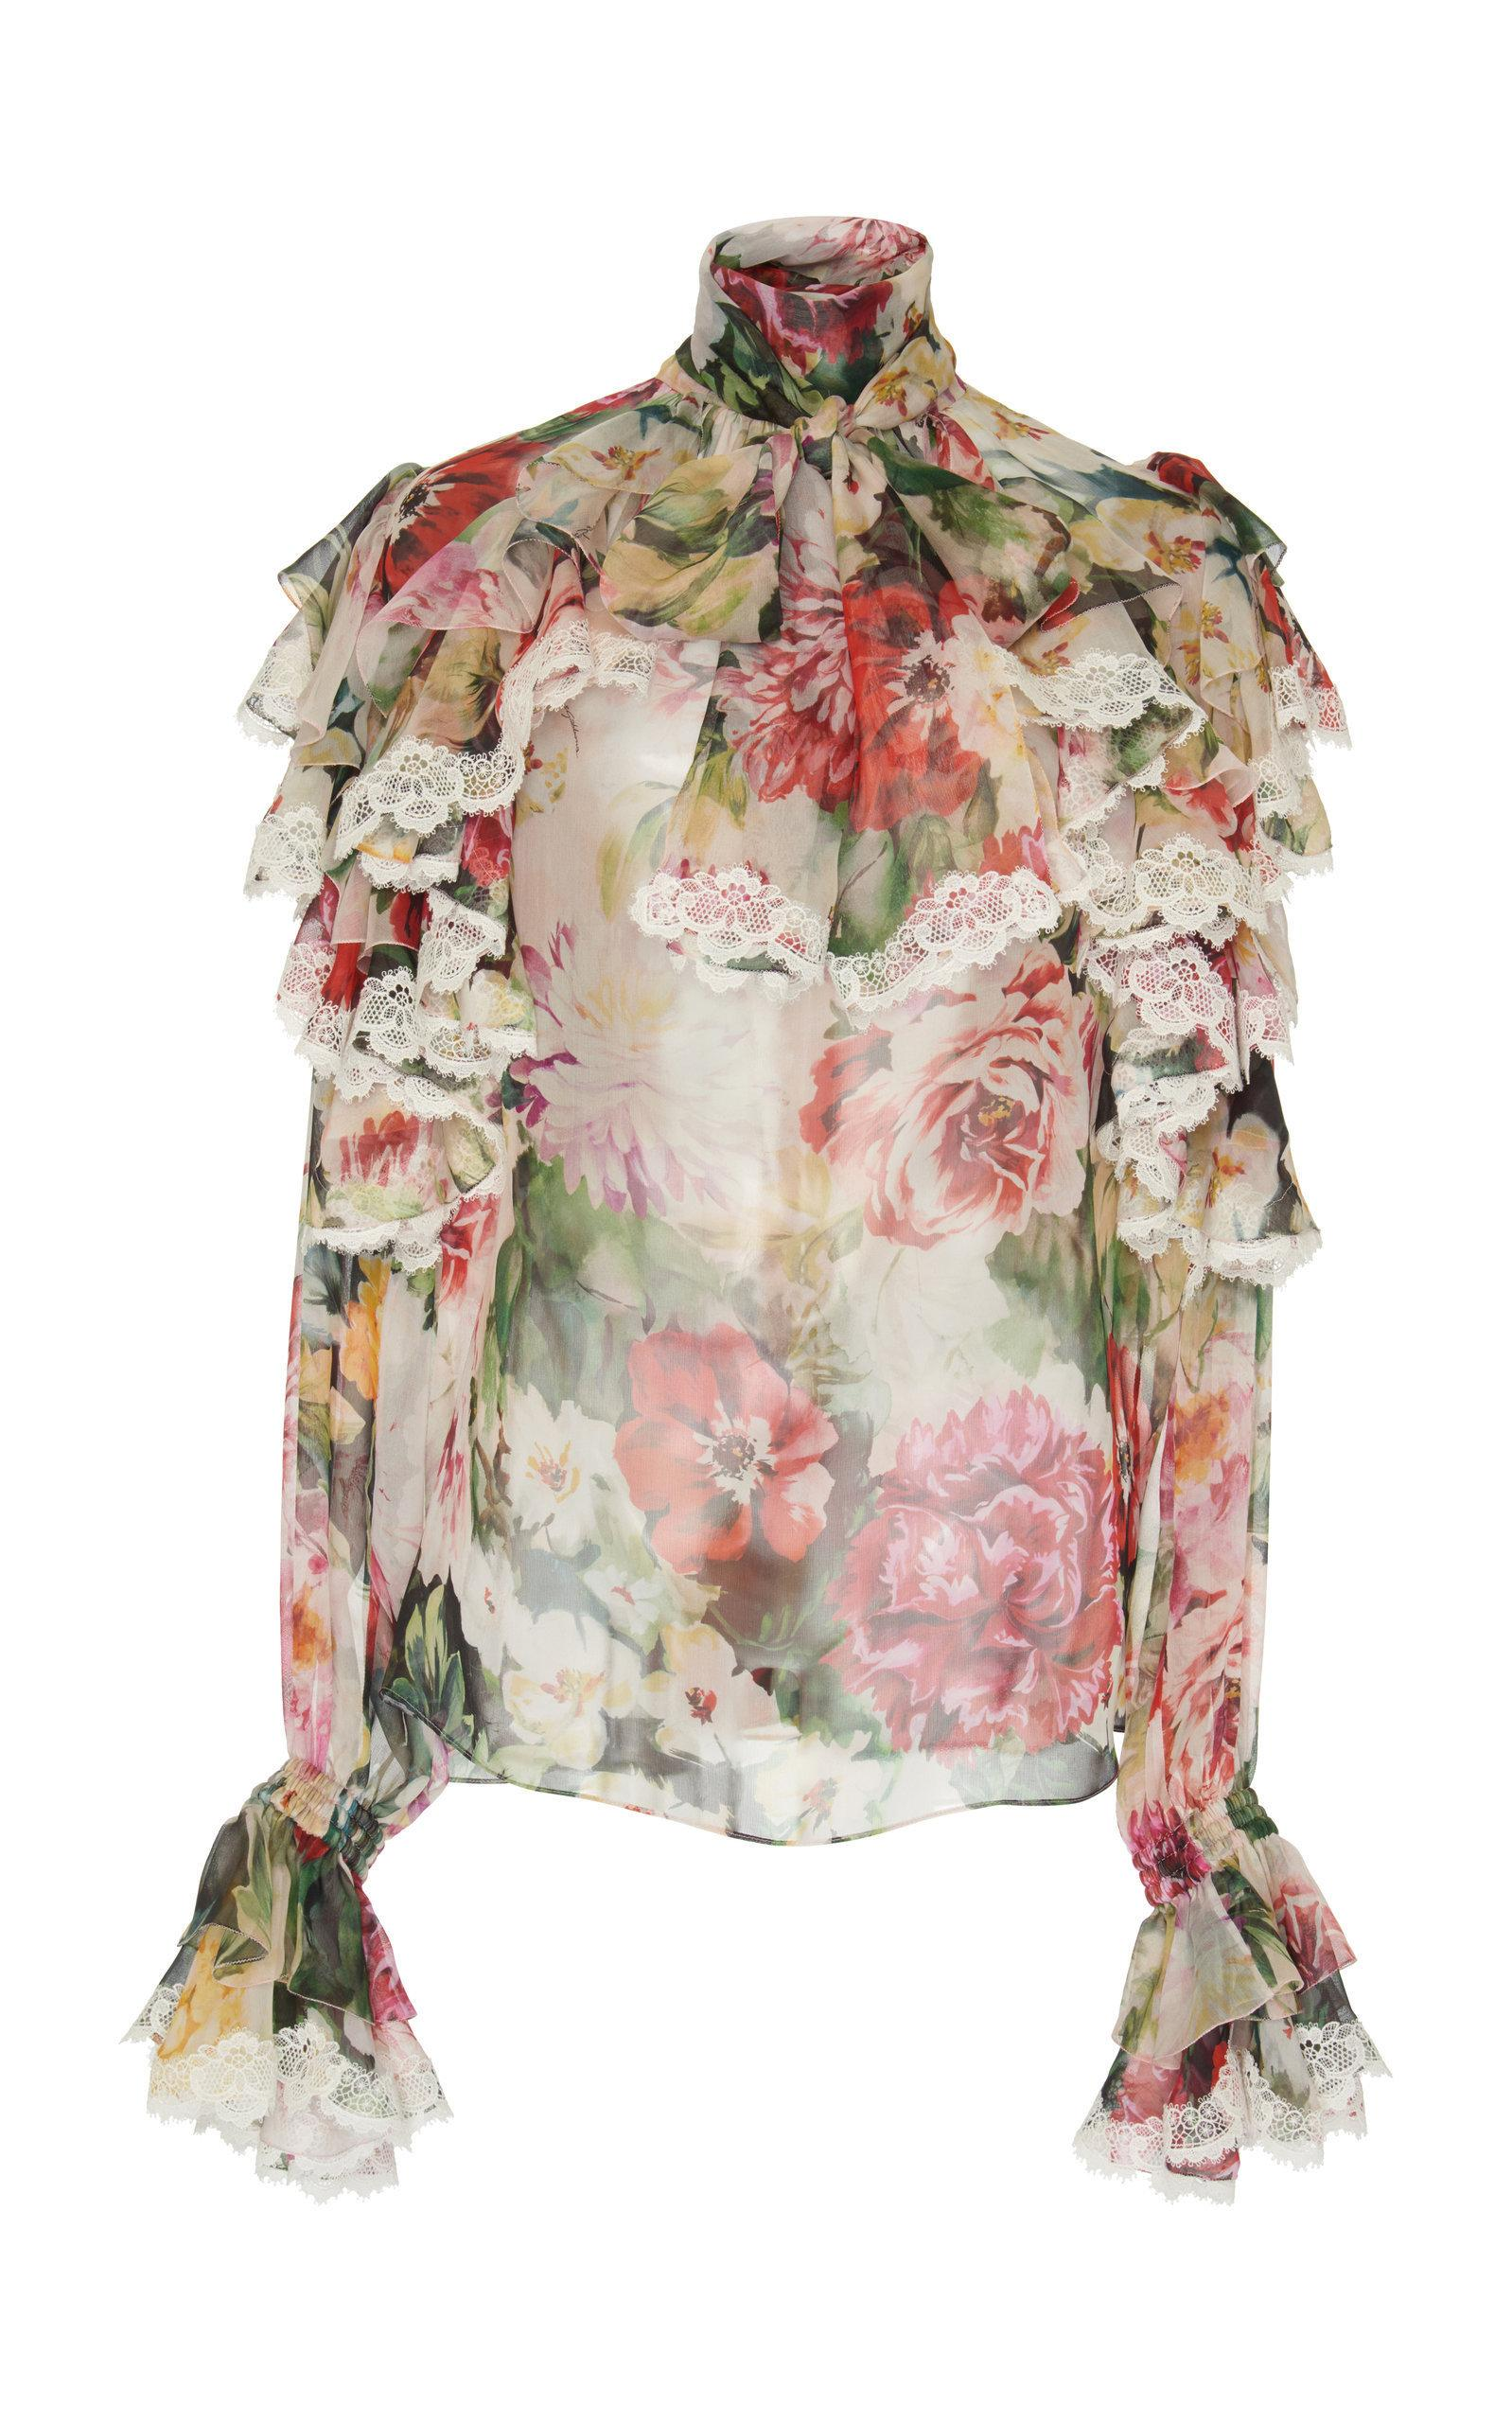 3897c45643ef1 Dolce   Gabbana Ruffled Lace-Trimmed Floral Silk-Georgette Blouse ...